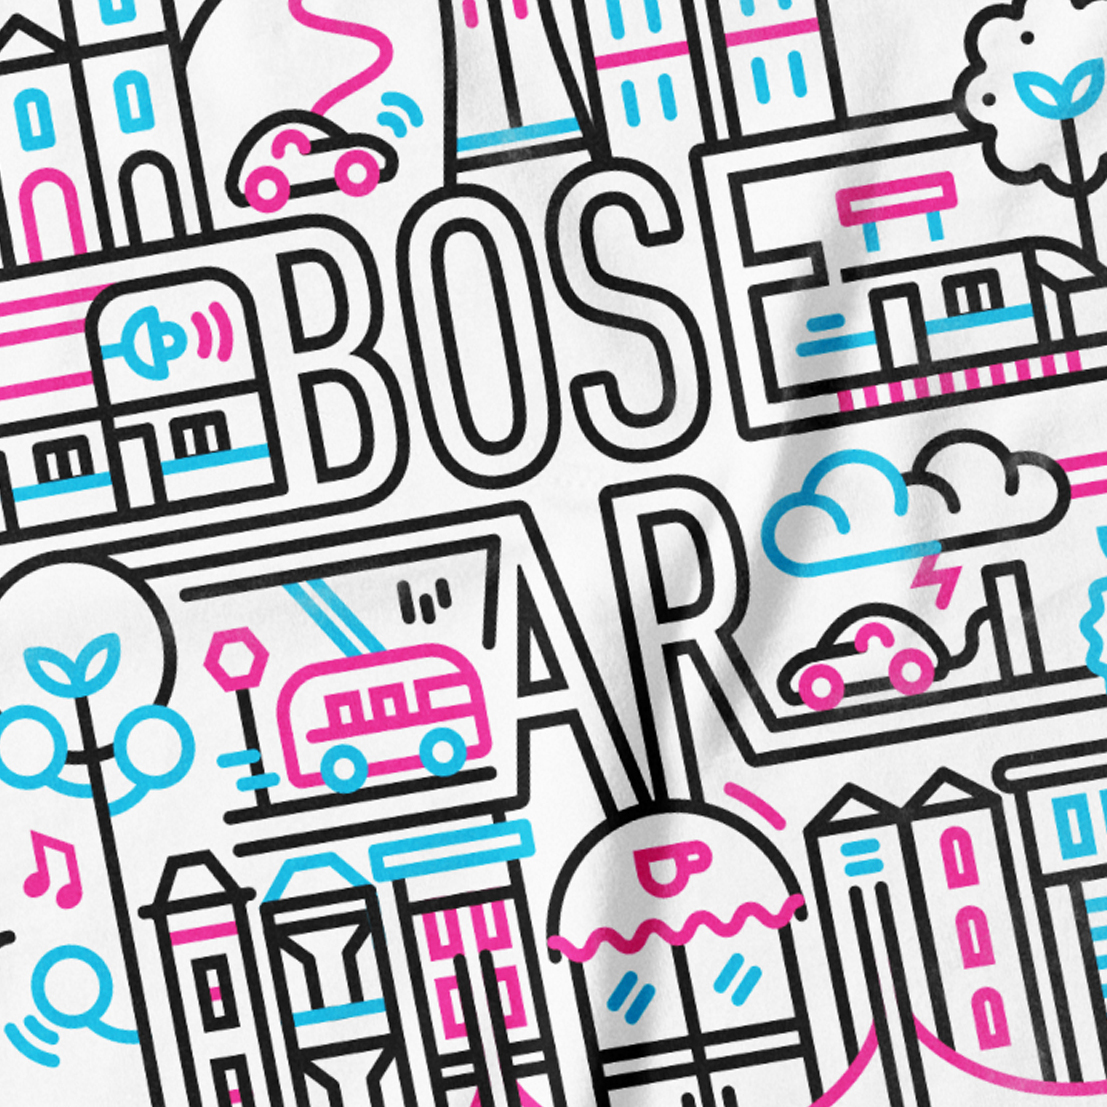 Bose AR Graphics - Illustration, print